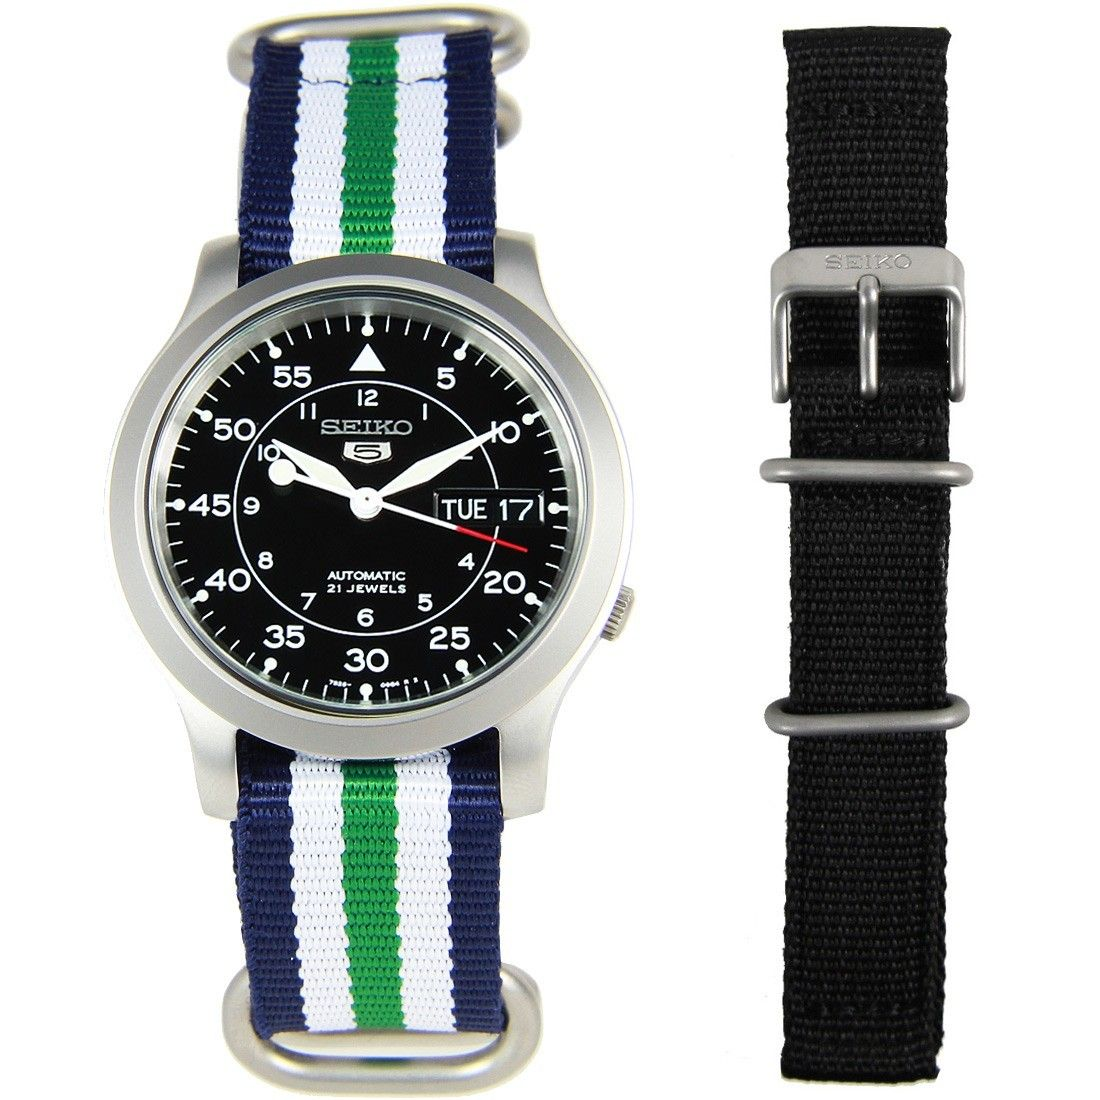 SNK809K2 Seiko 5 Automatic Watch with additional band